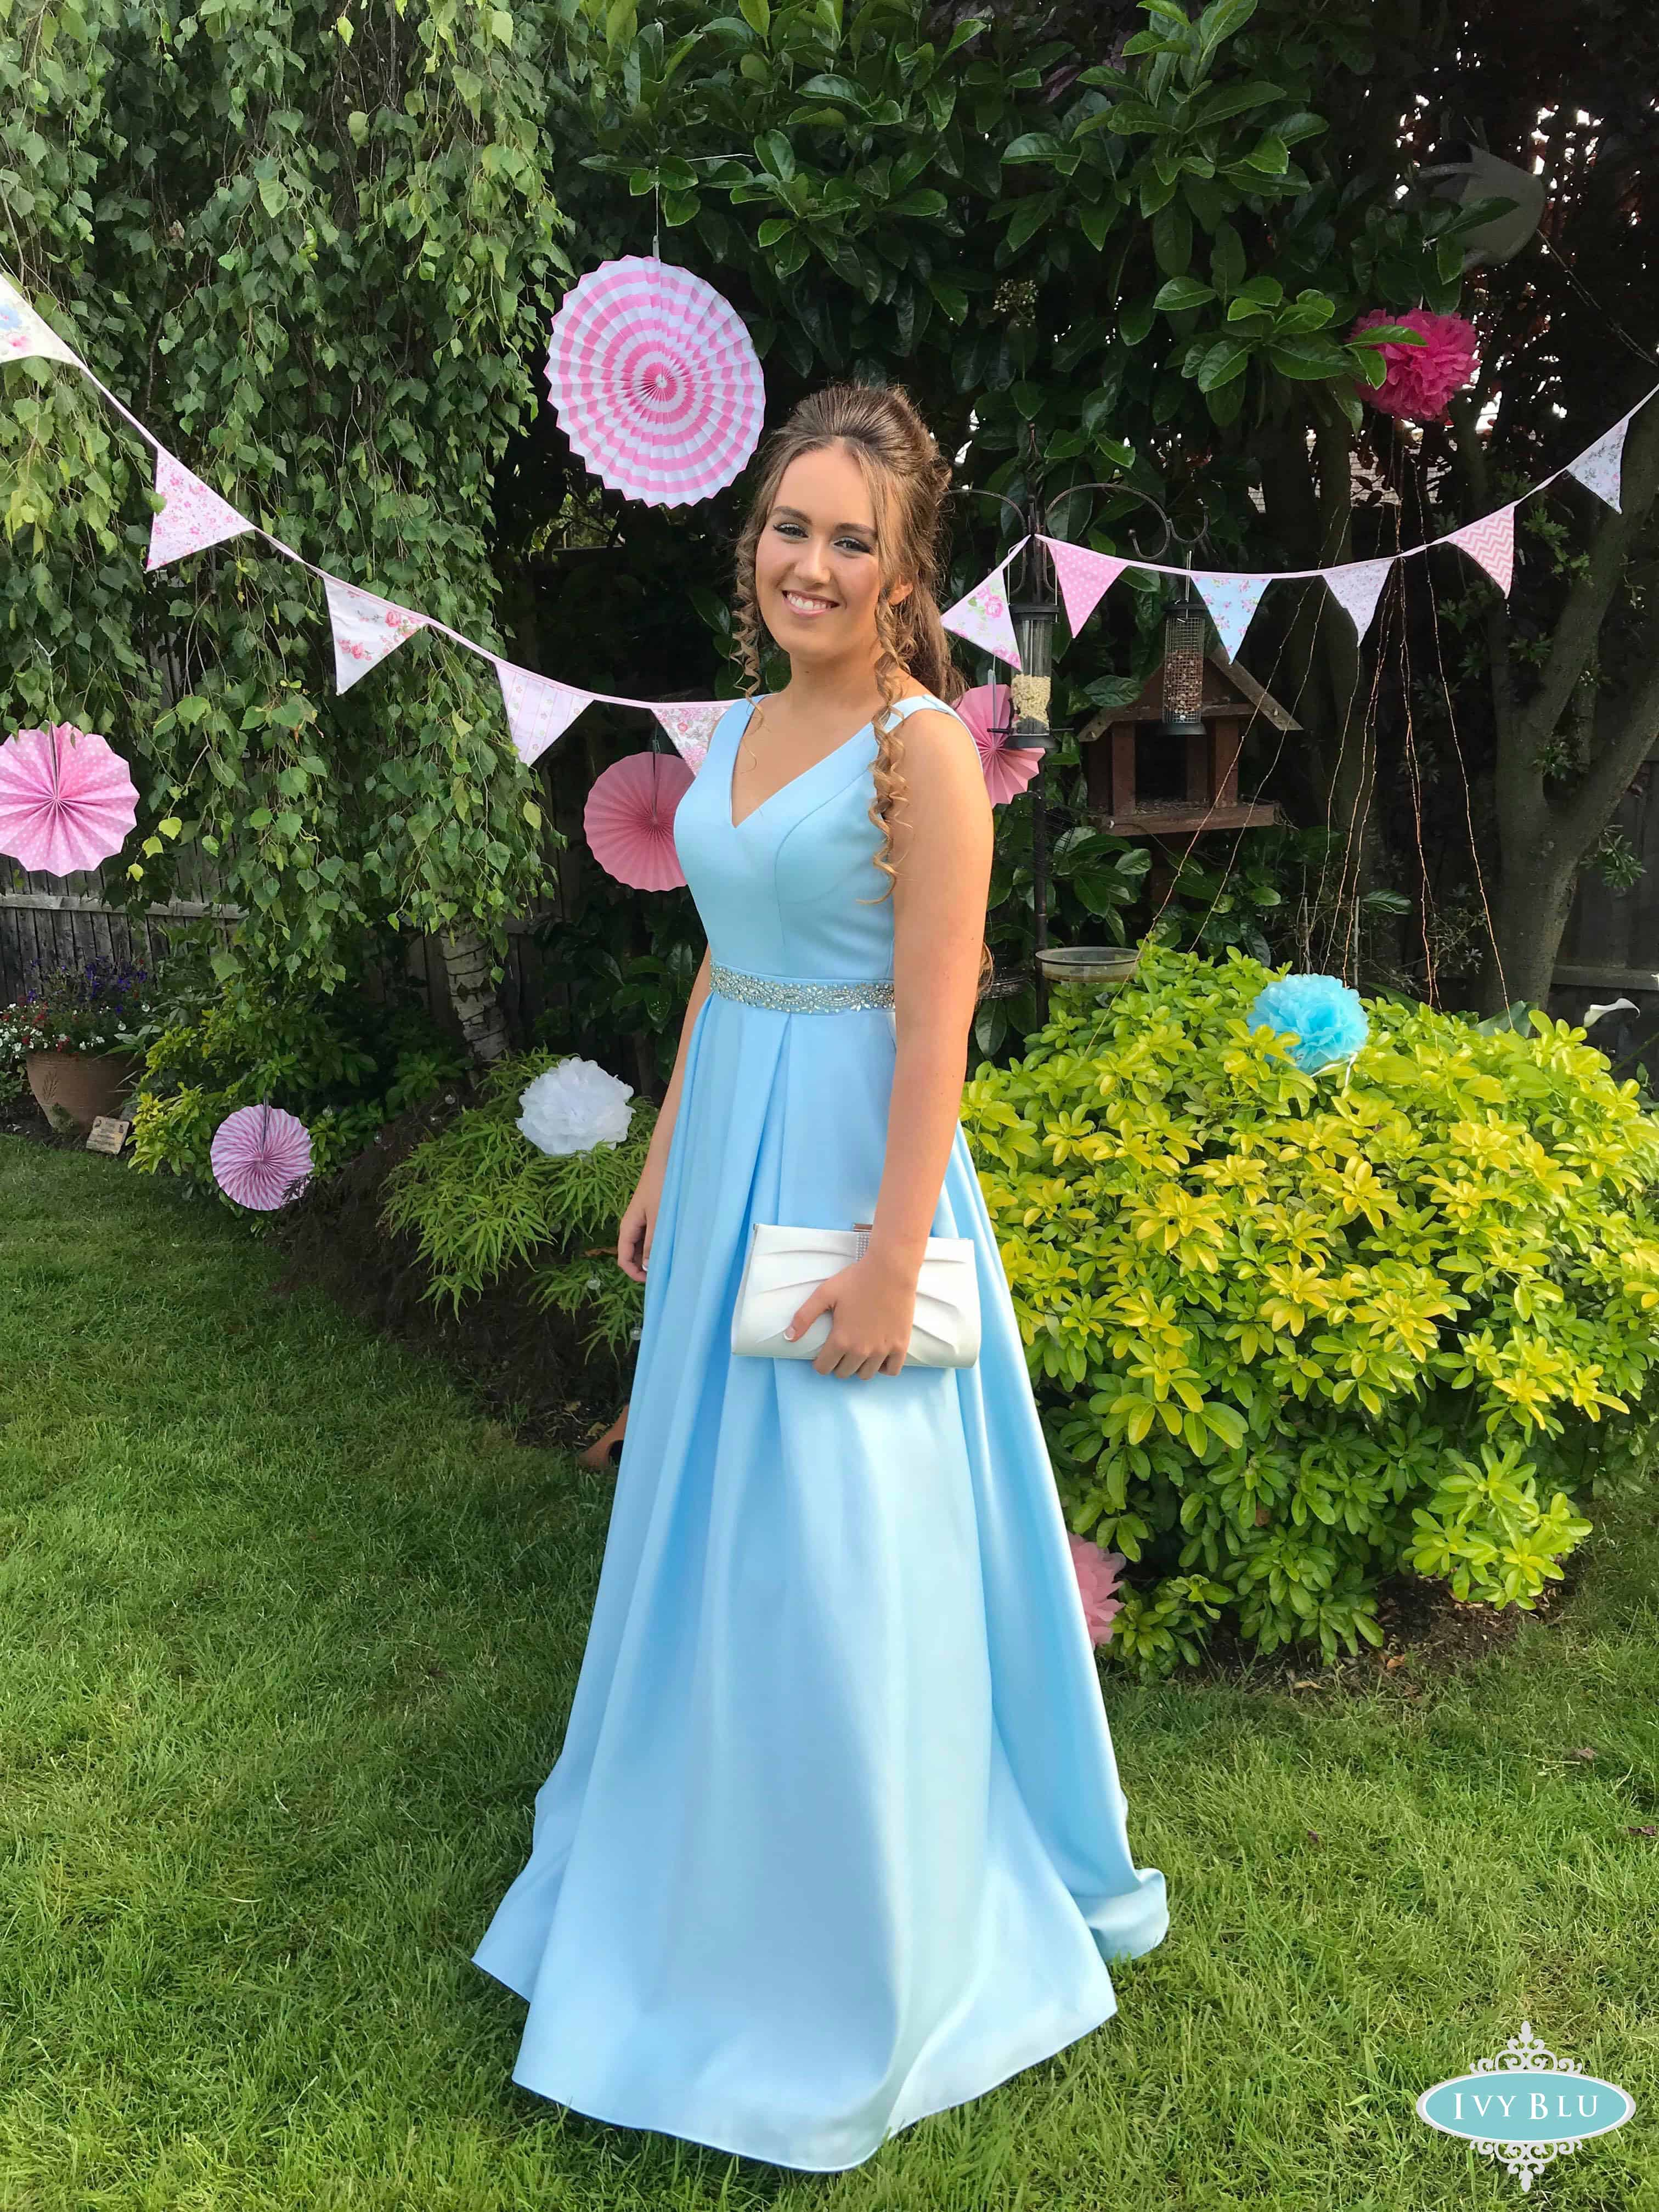 Girlin Long Light Blue Dress With Bunting